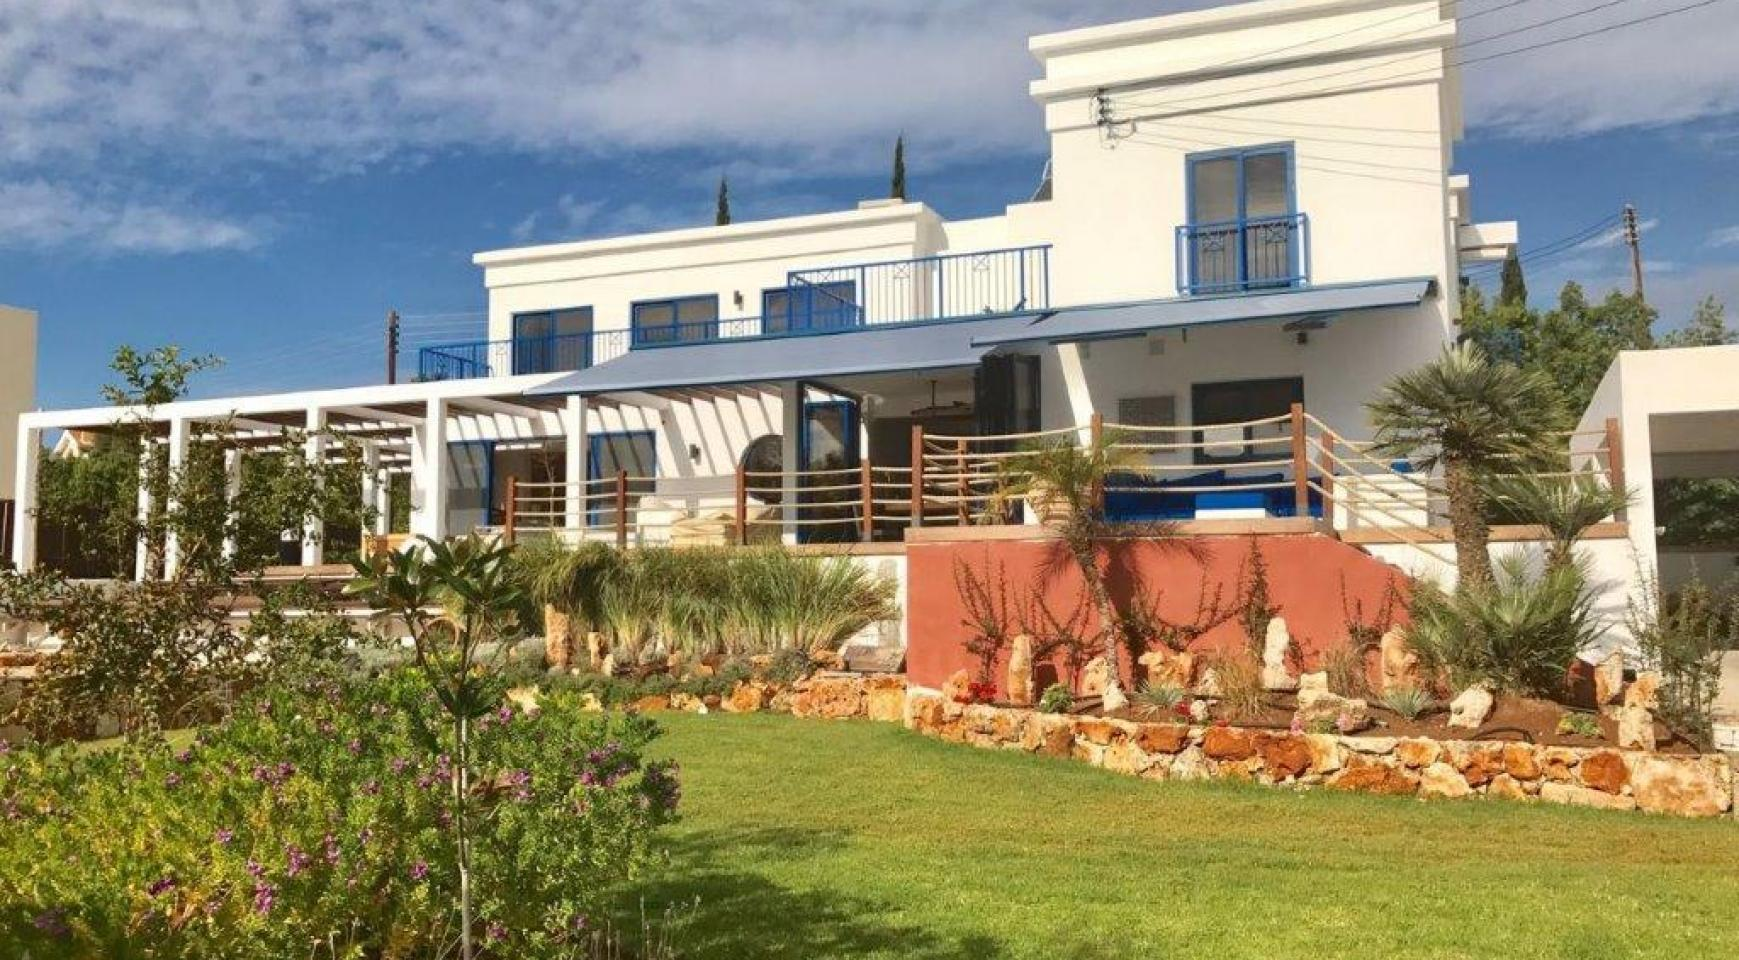 5 Bedroom Villa with Sea Views in Agios Tychonas Area - 1